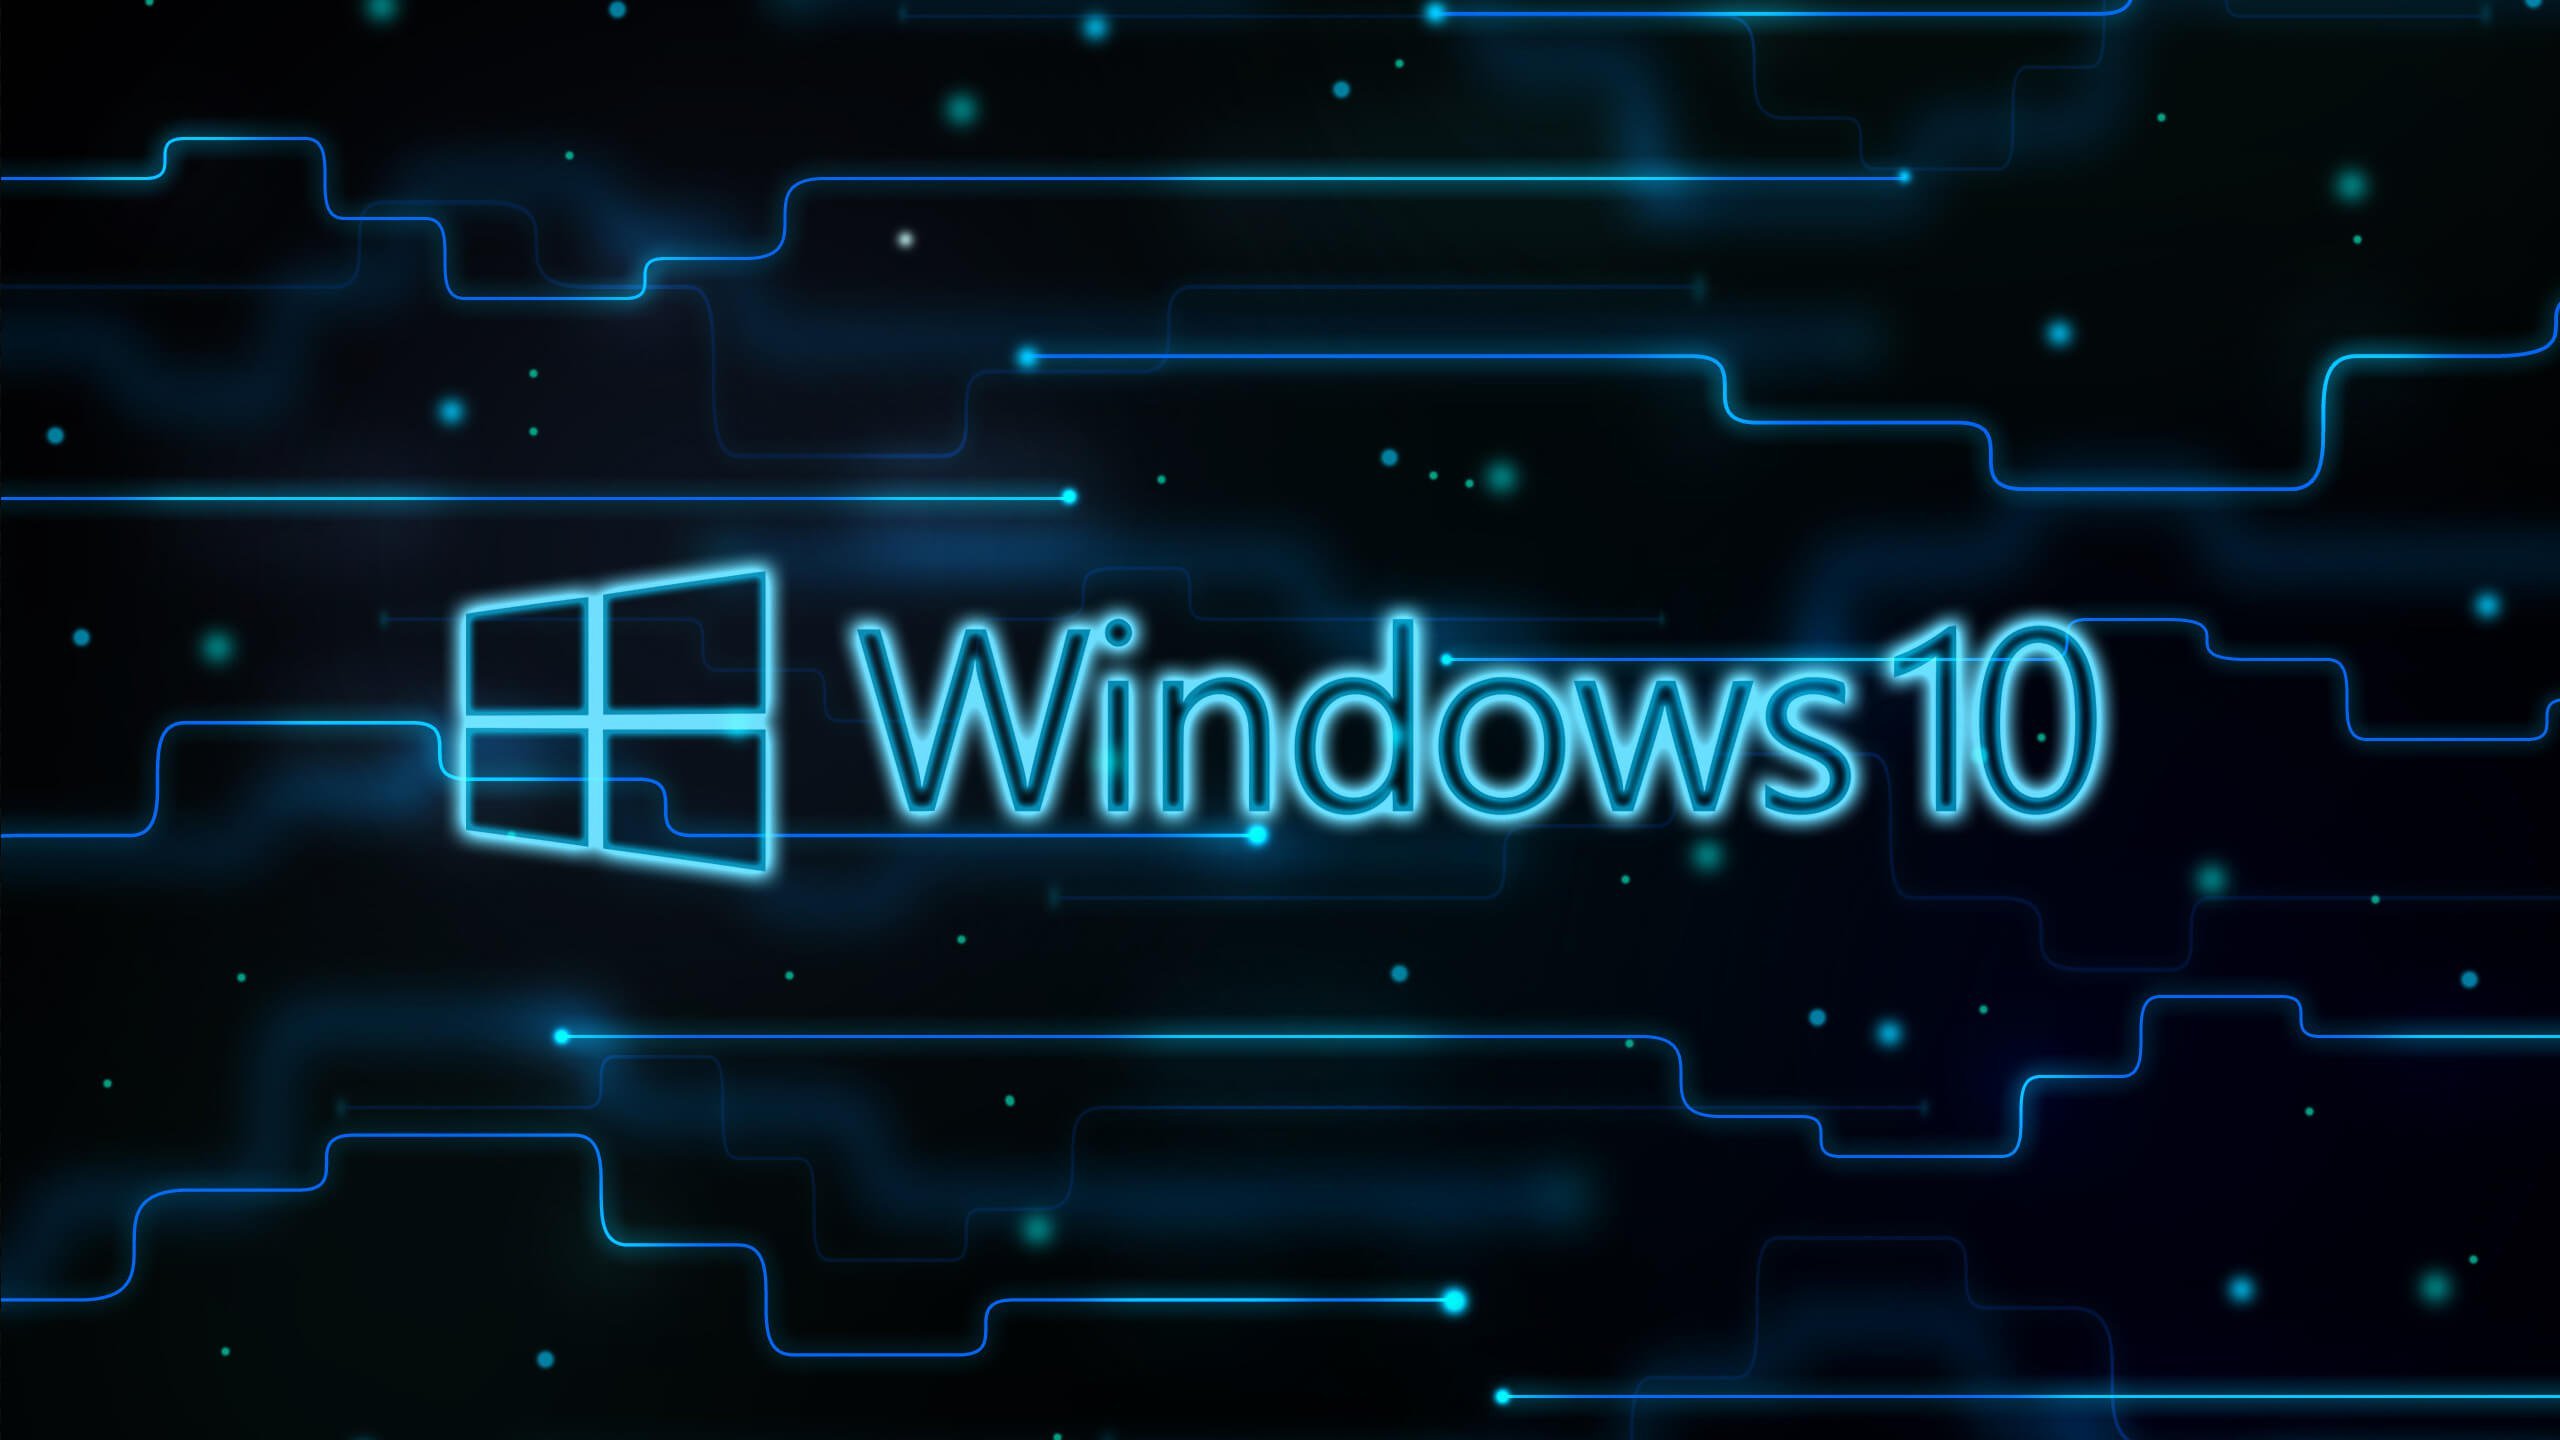 Windows 10 — líder. Finalmente!